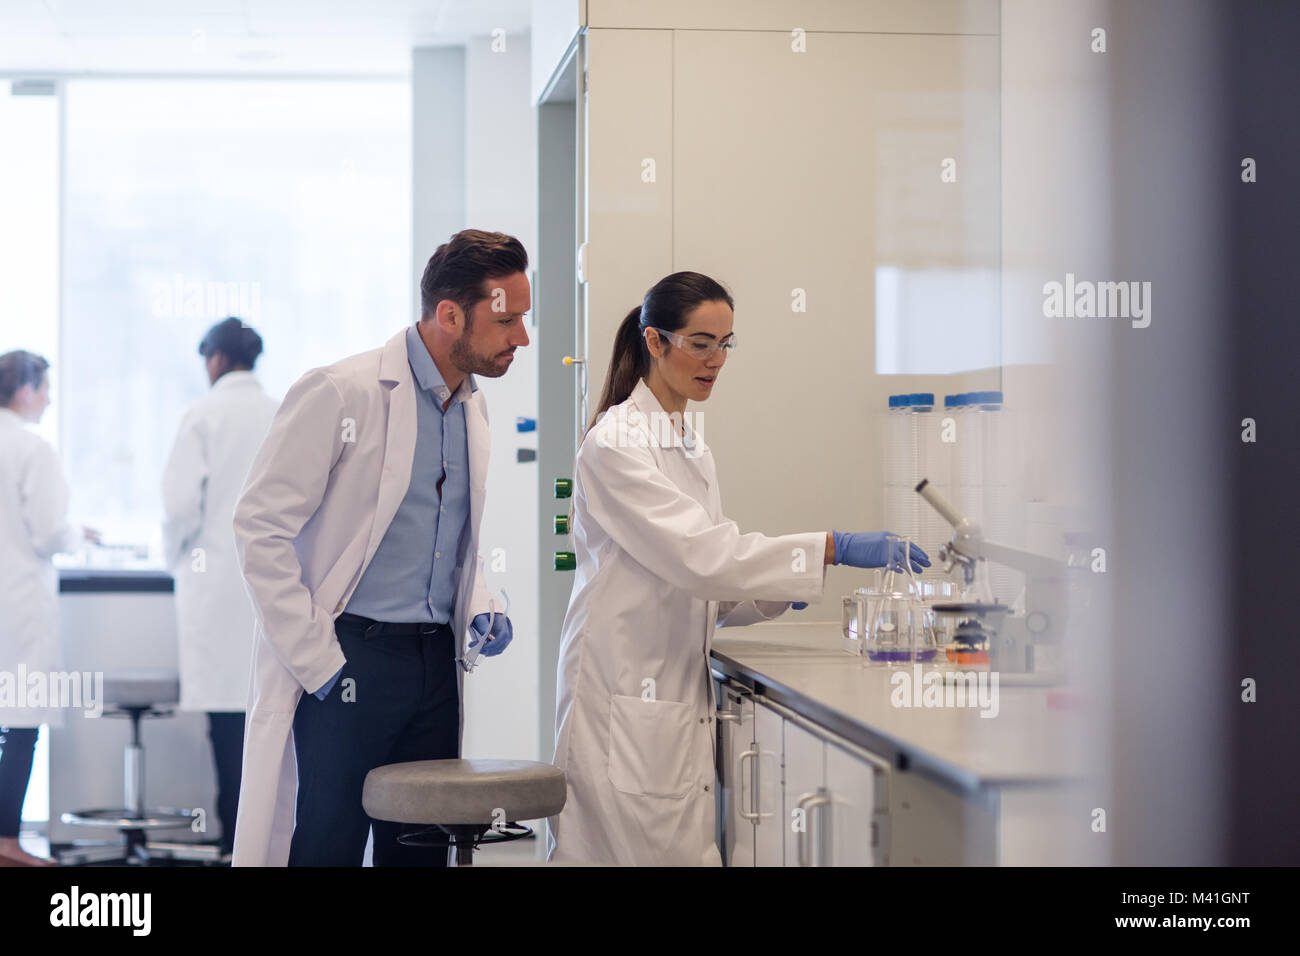 Female student scientist working on an experiment - Stock Image